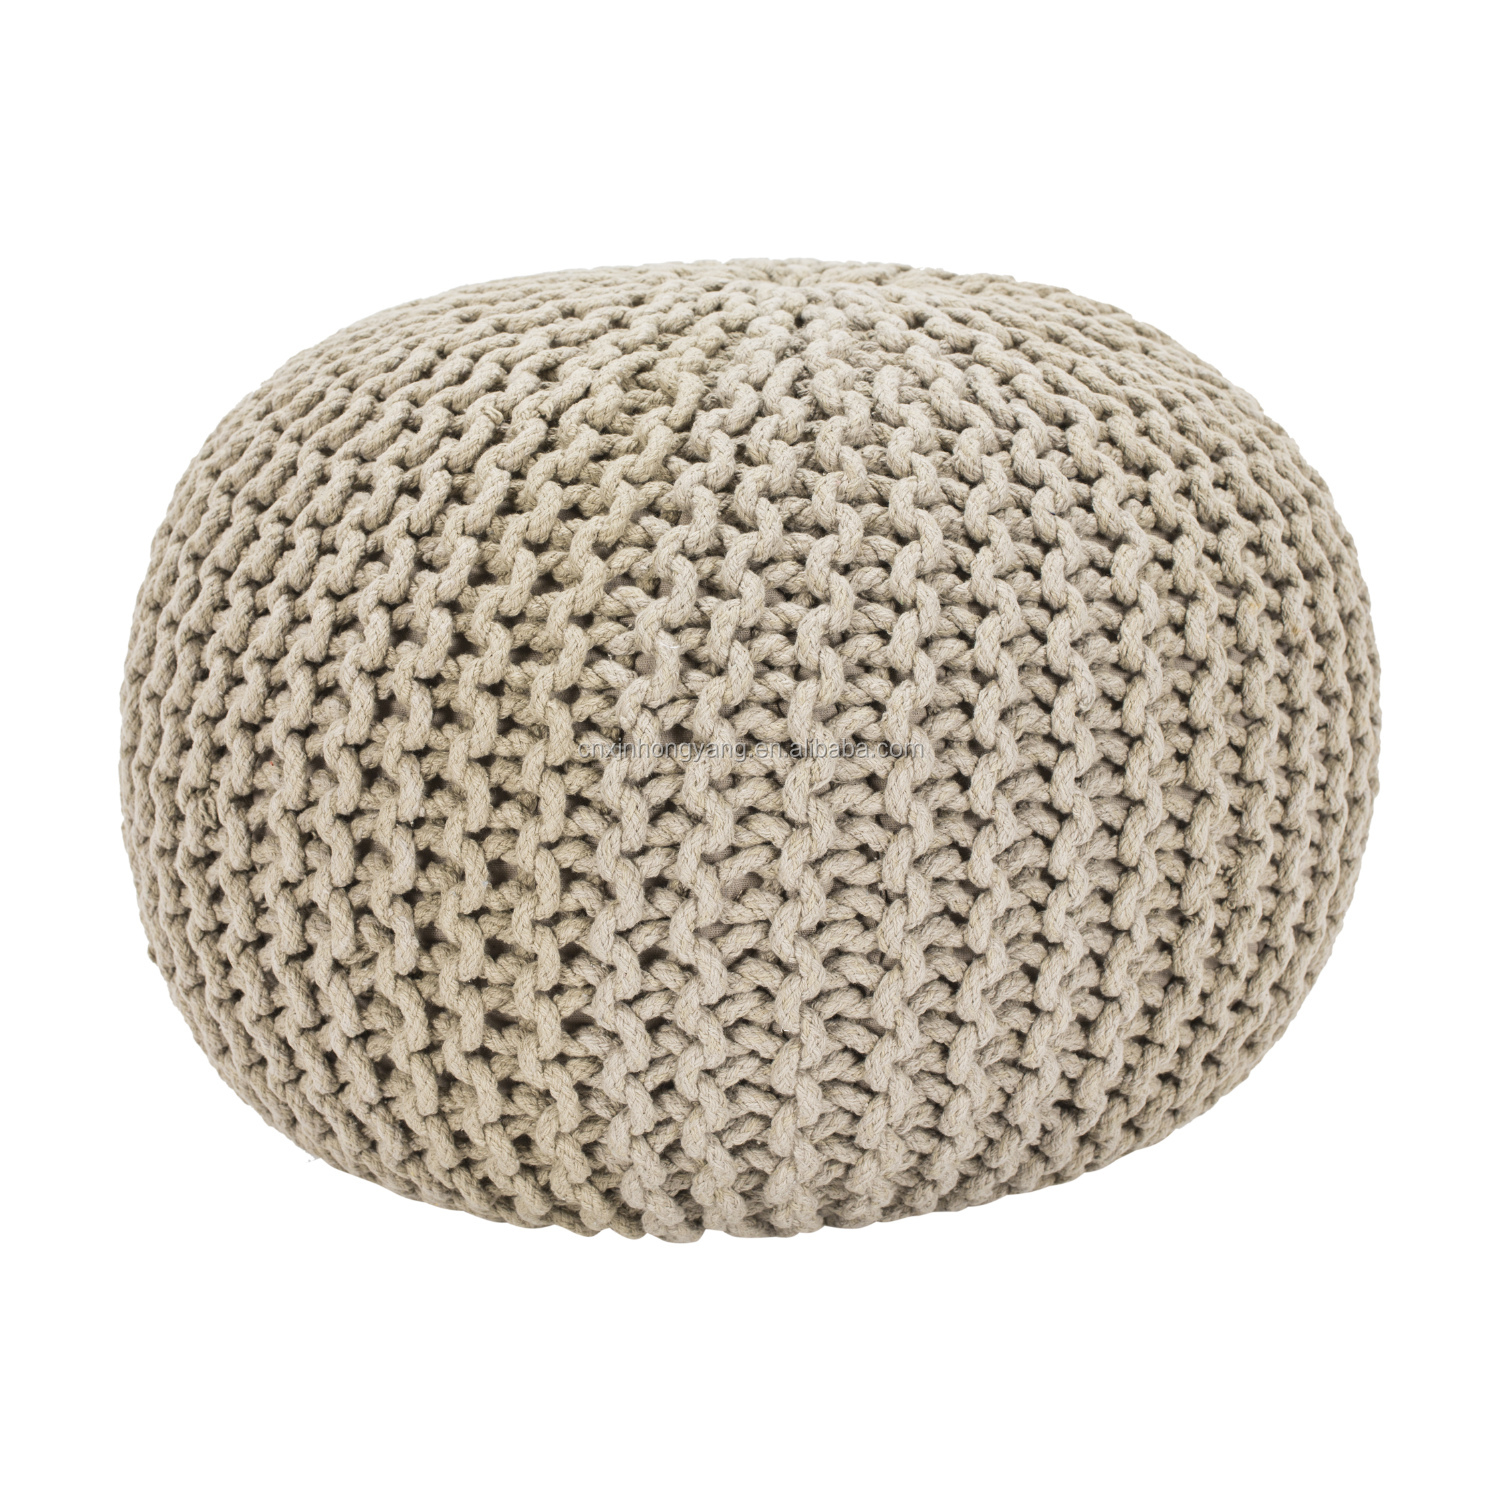 Knitted Pouffe Foot Stool Cushion Weave